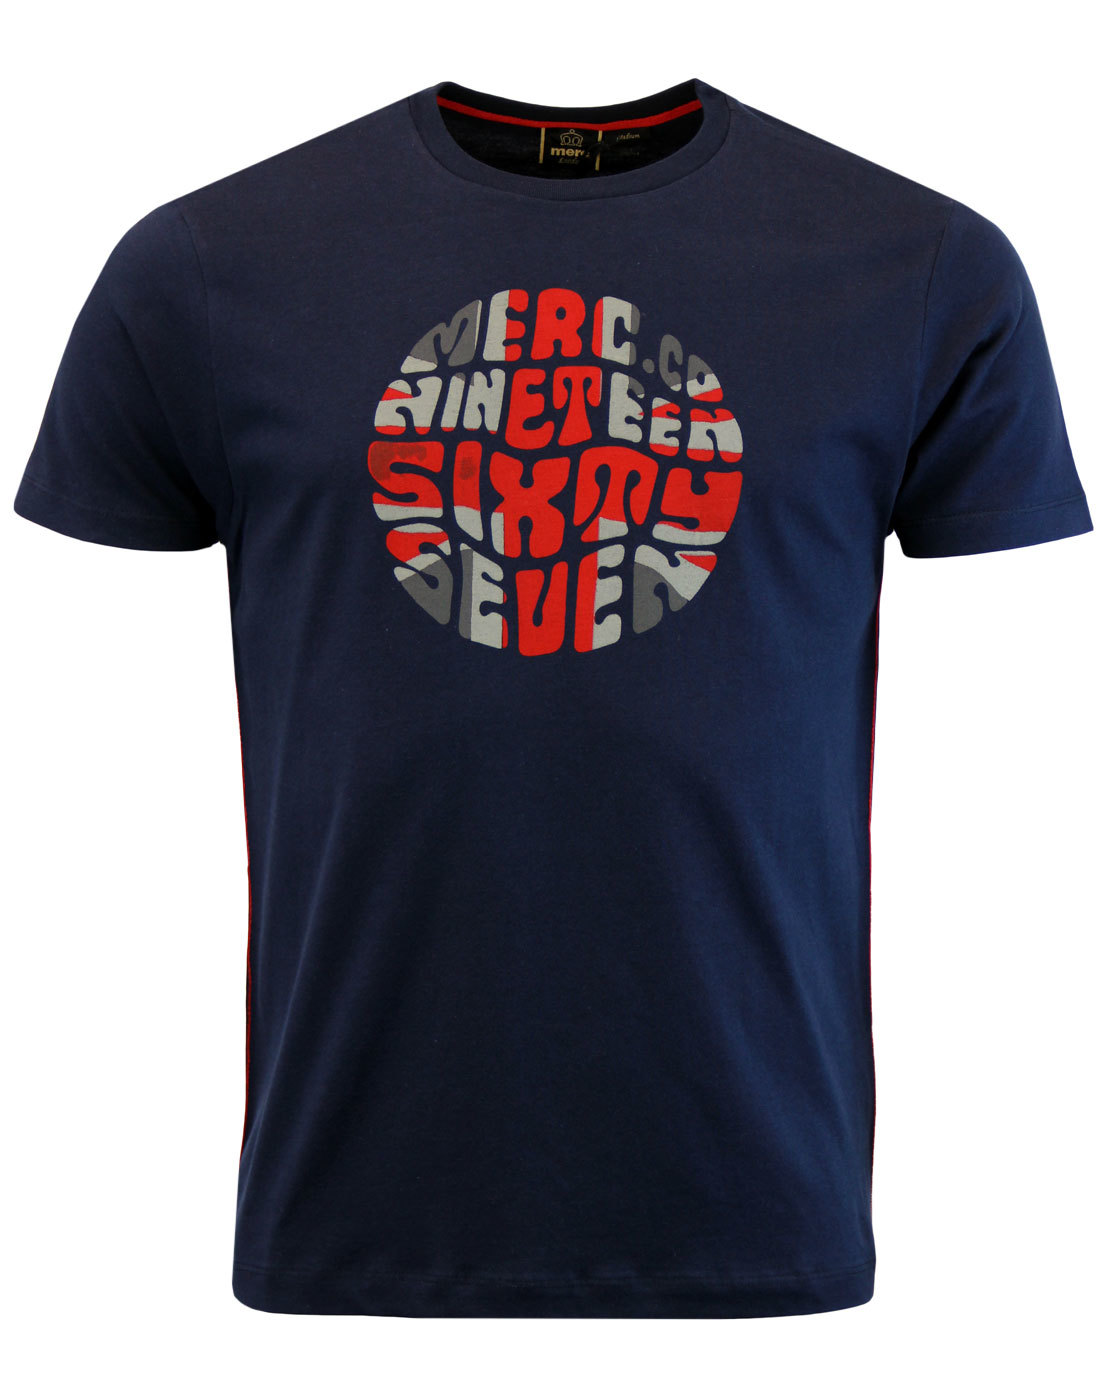 Saxby MERC Retro 1960s Mod Union Jack Pop Art Tee